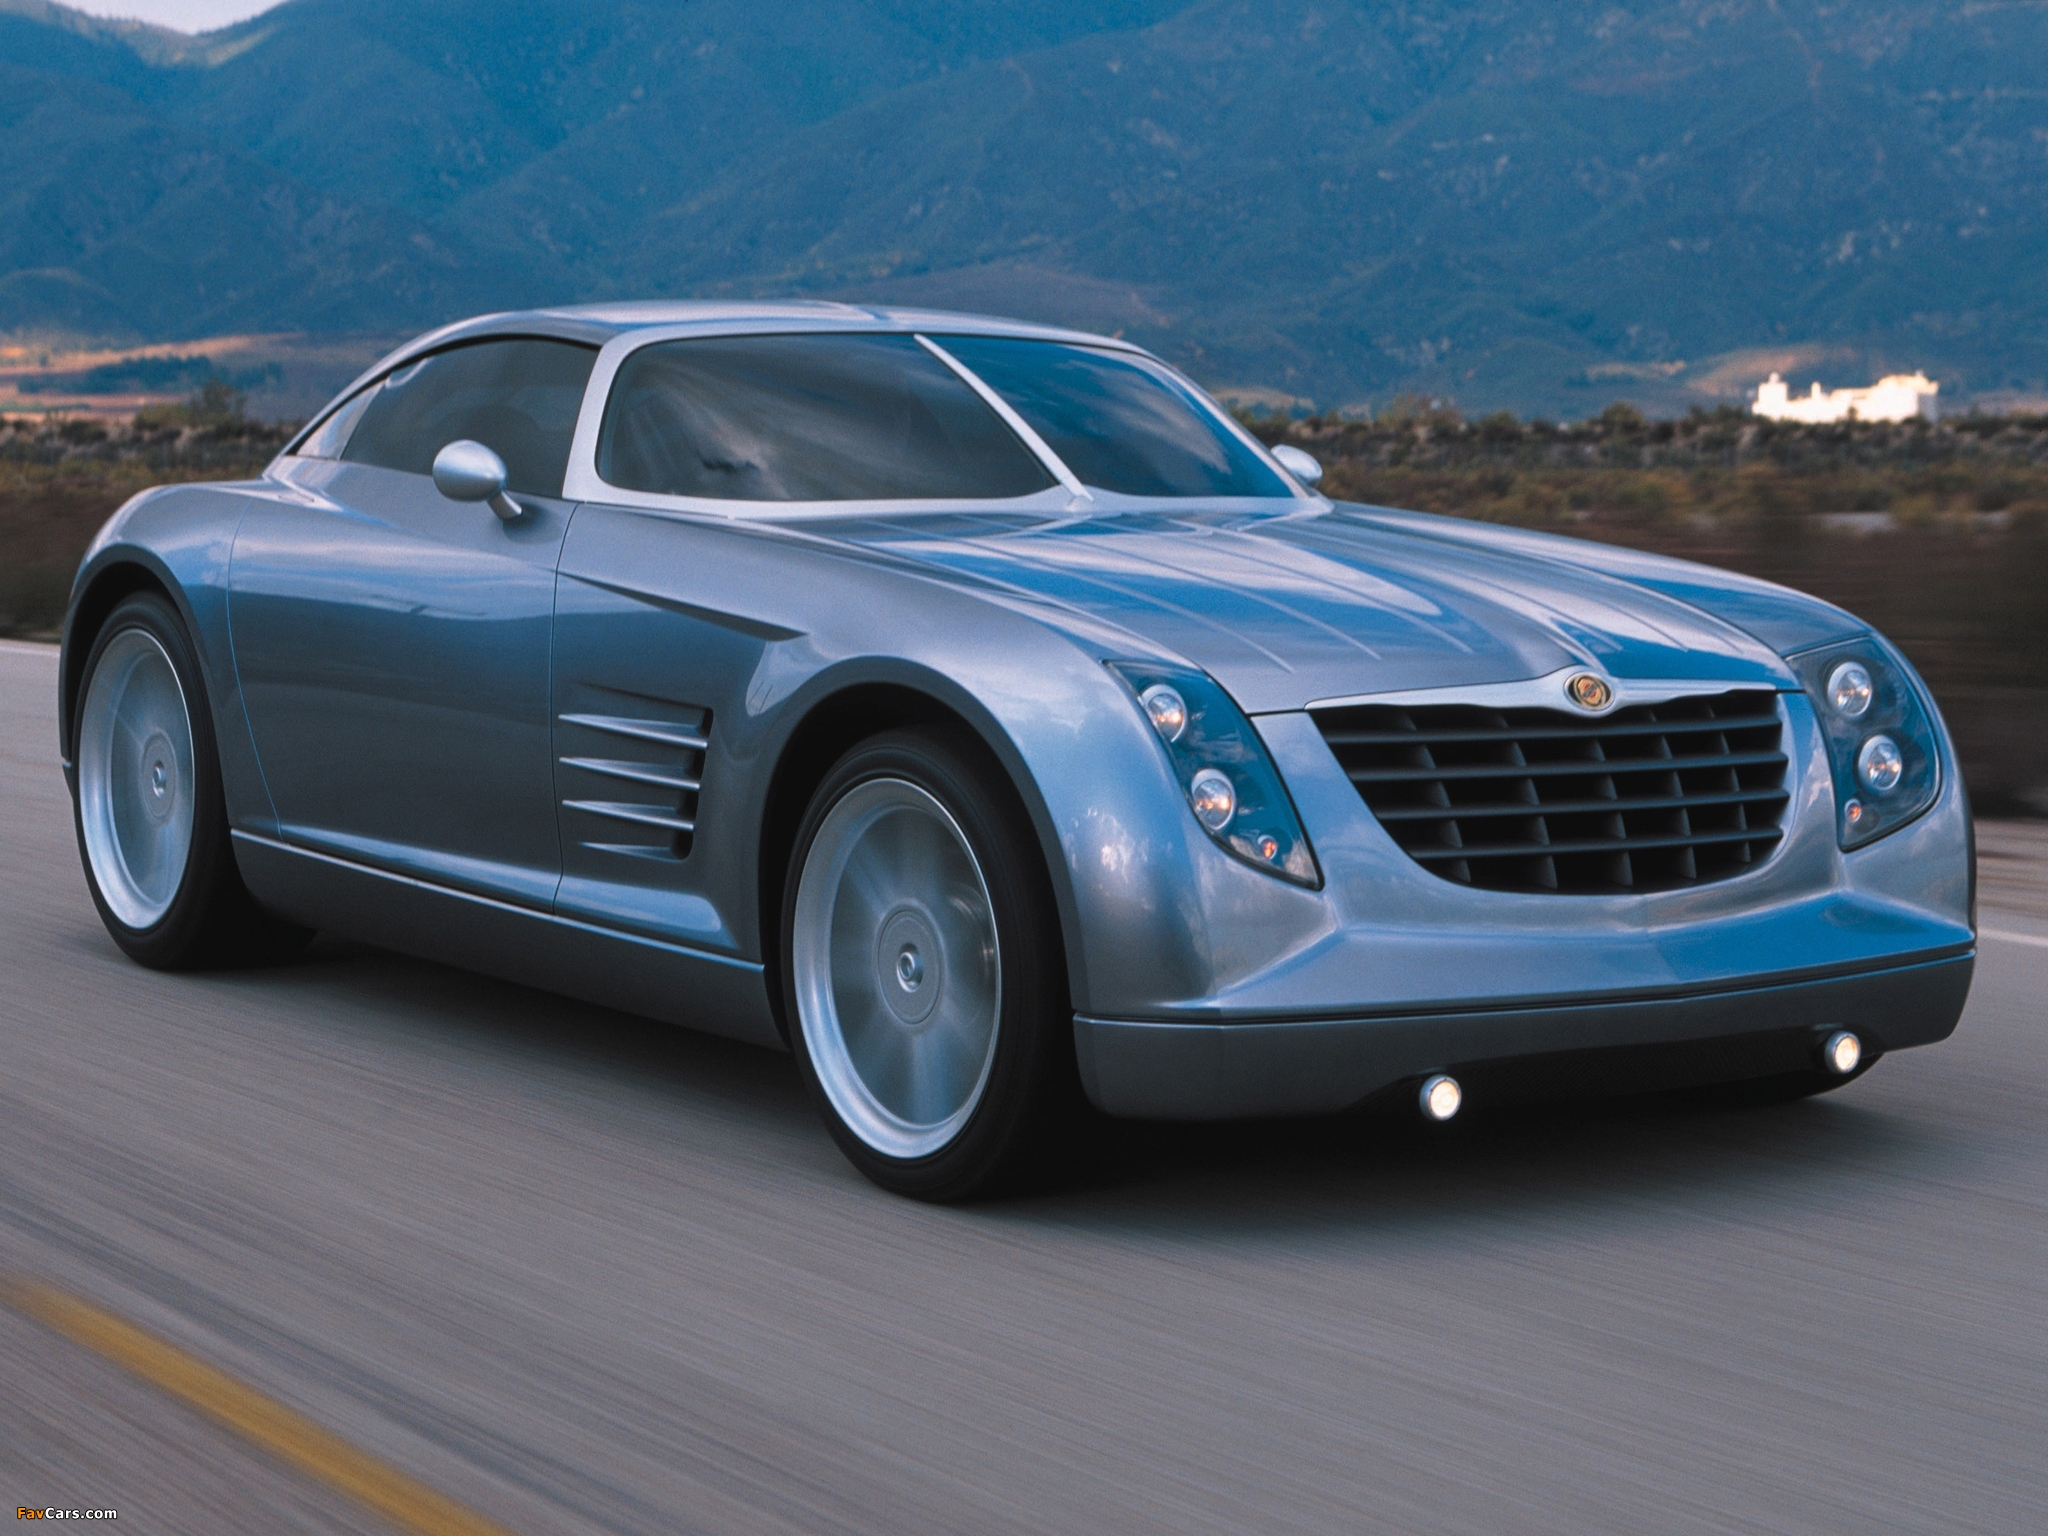 Chrysler Crossfire Concept 2001 photos (2048 x 1536)